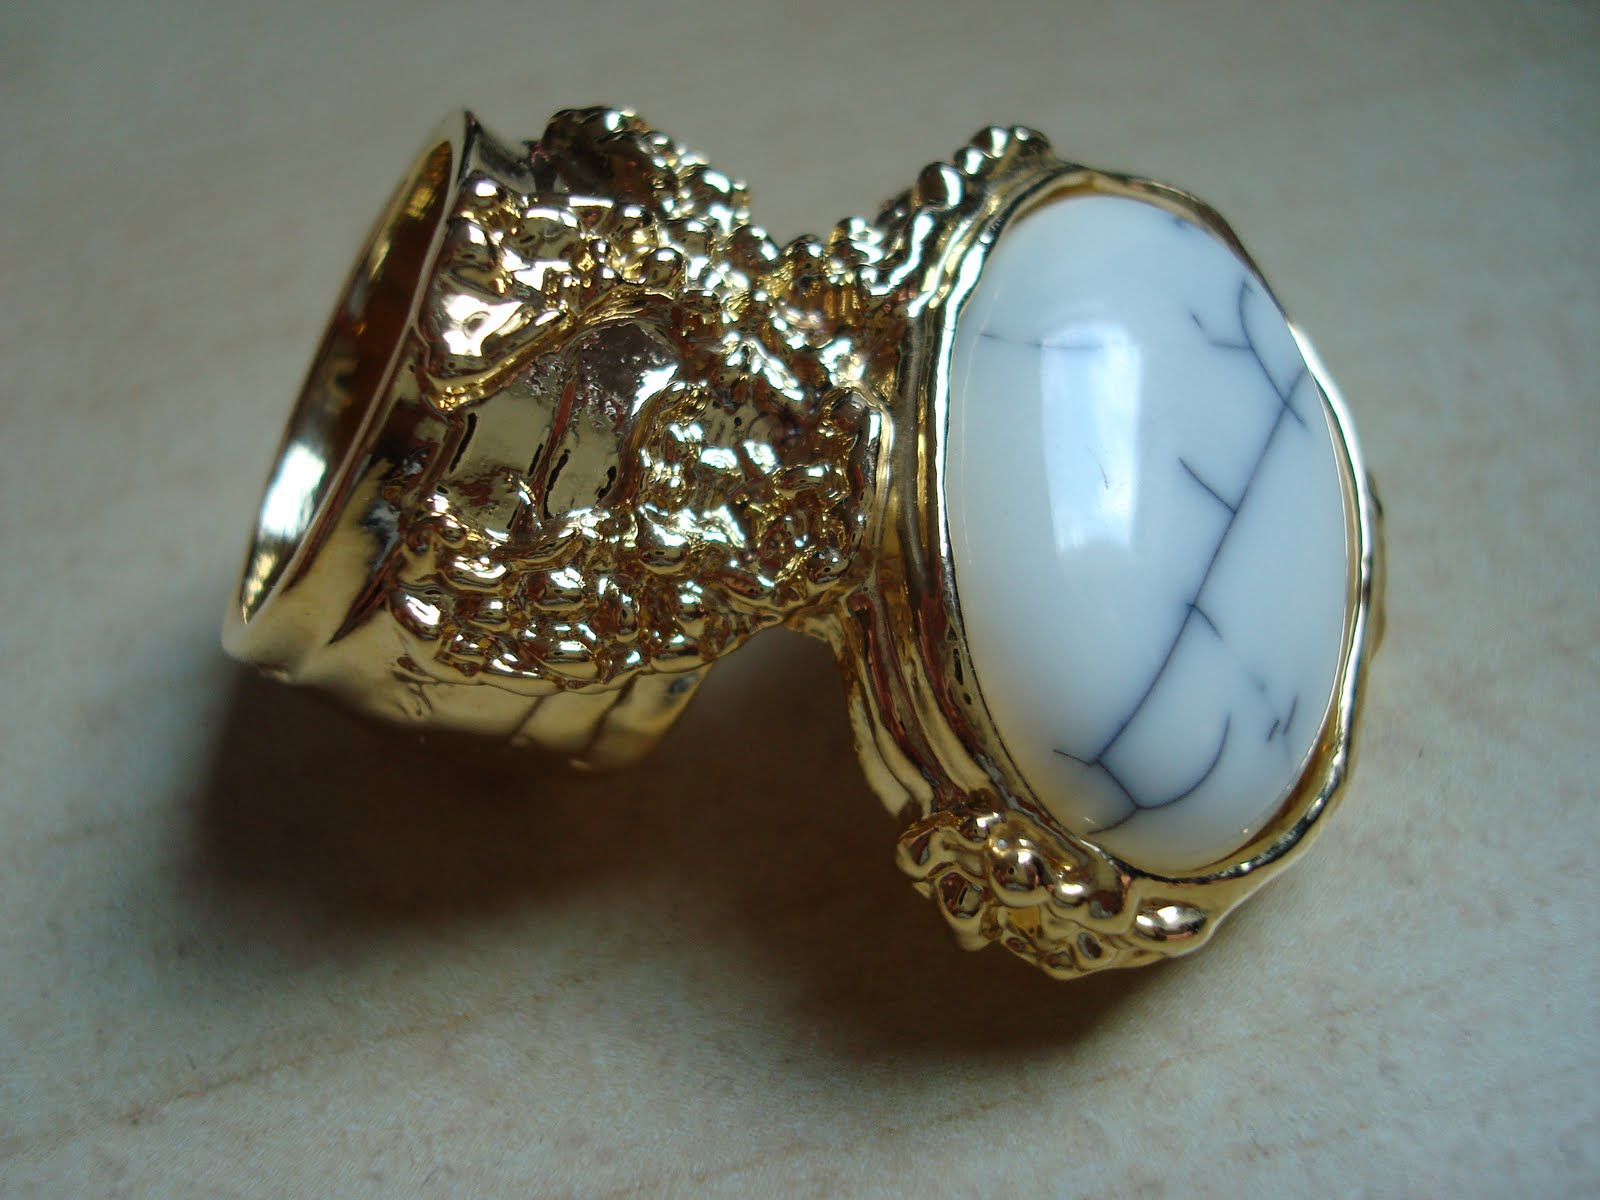 yves st laurent bag - best trend fashion 2012: YSL Arty Ring Lookalike